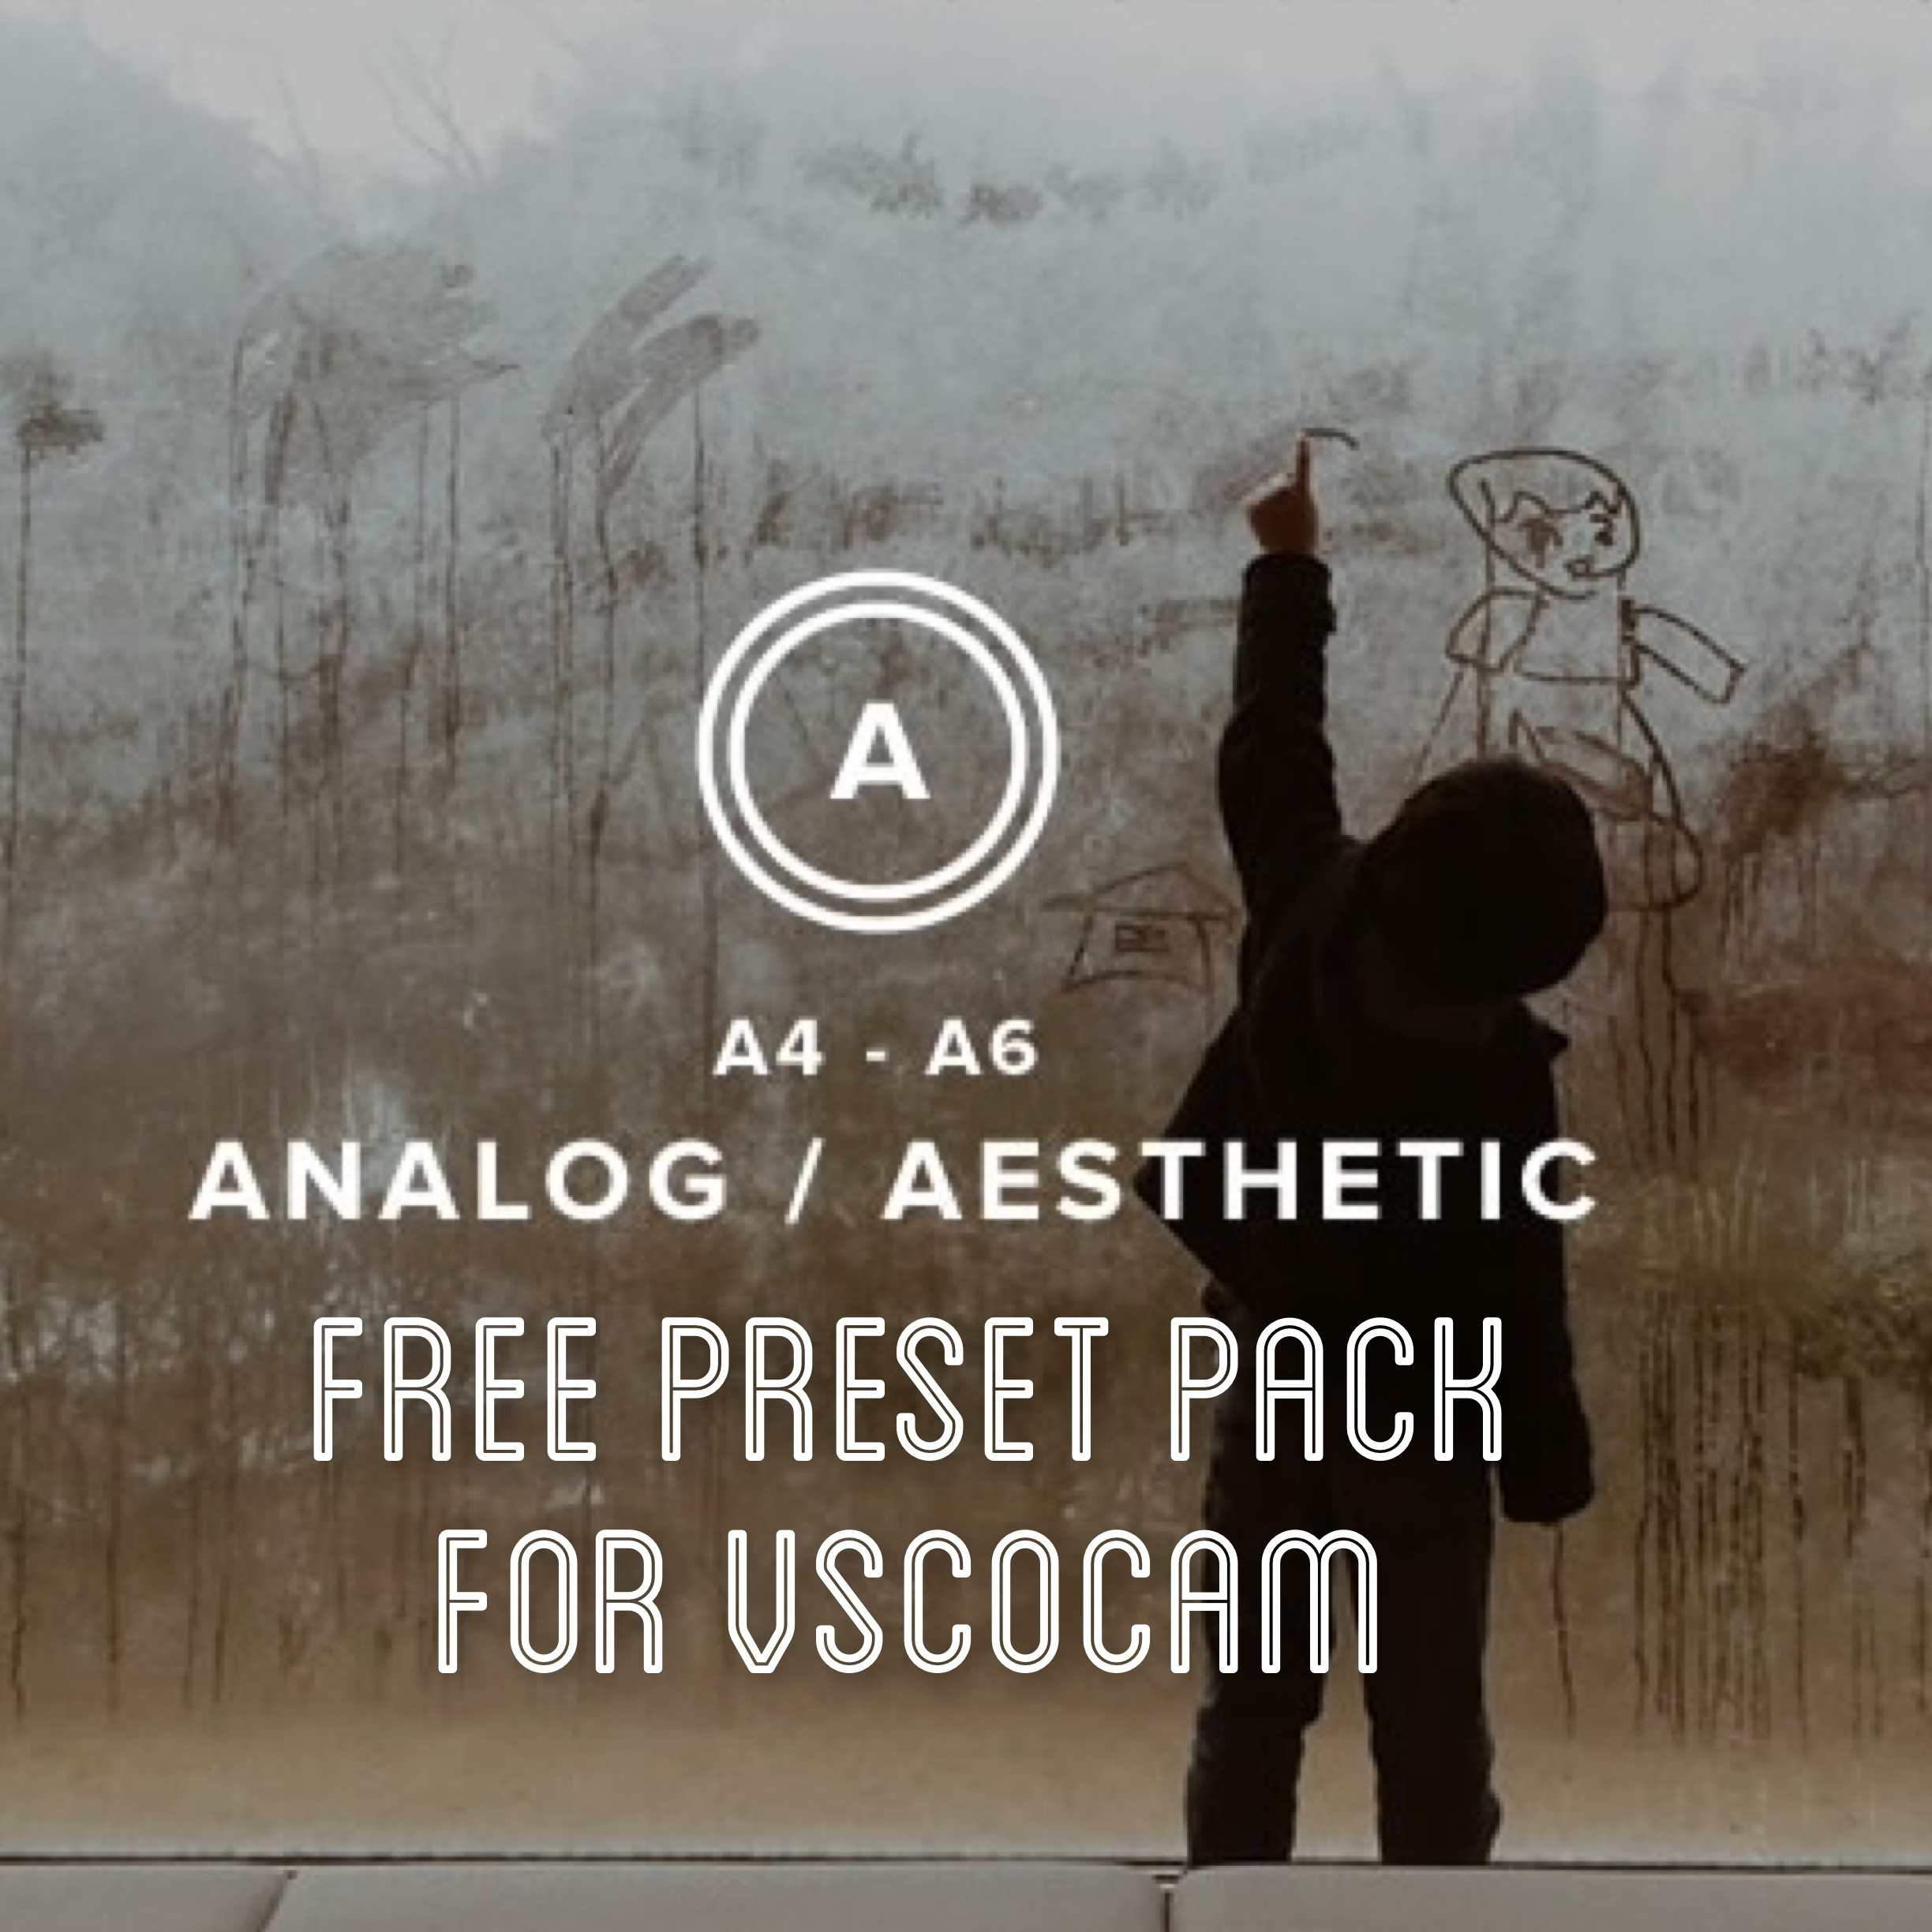 A new Analog/Aesthetic Preset Pack for VSCOCam FREE for grab